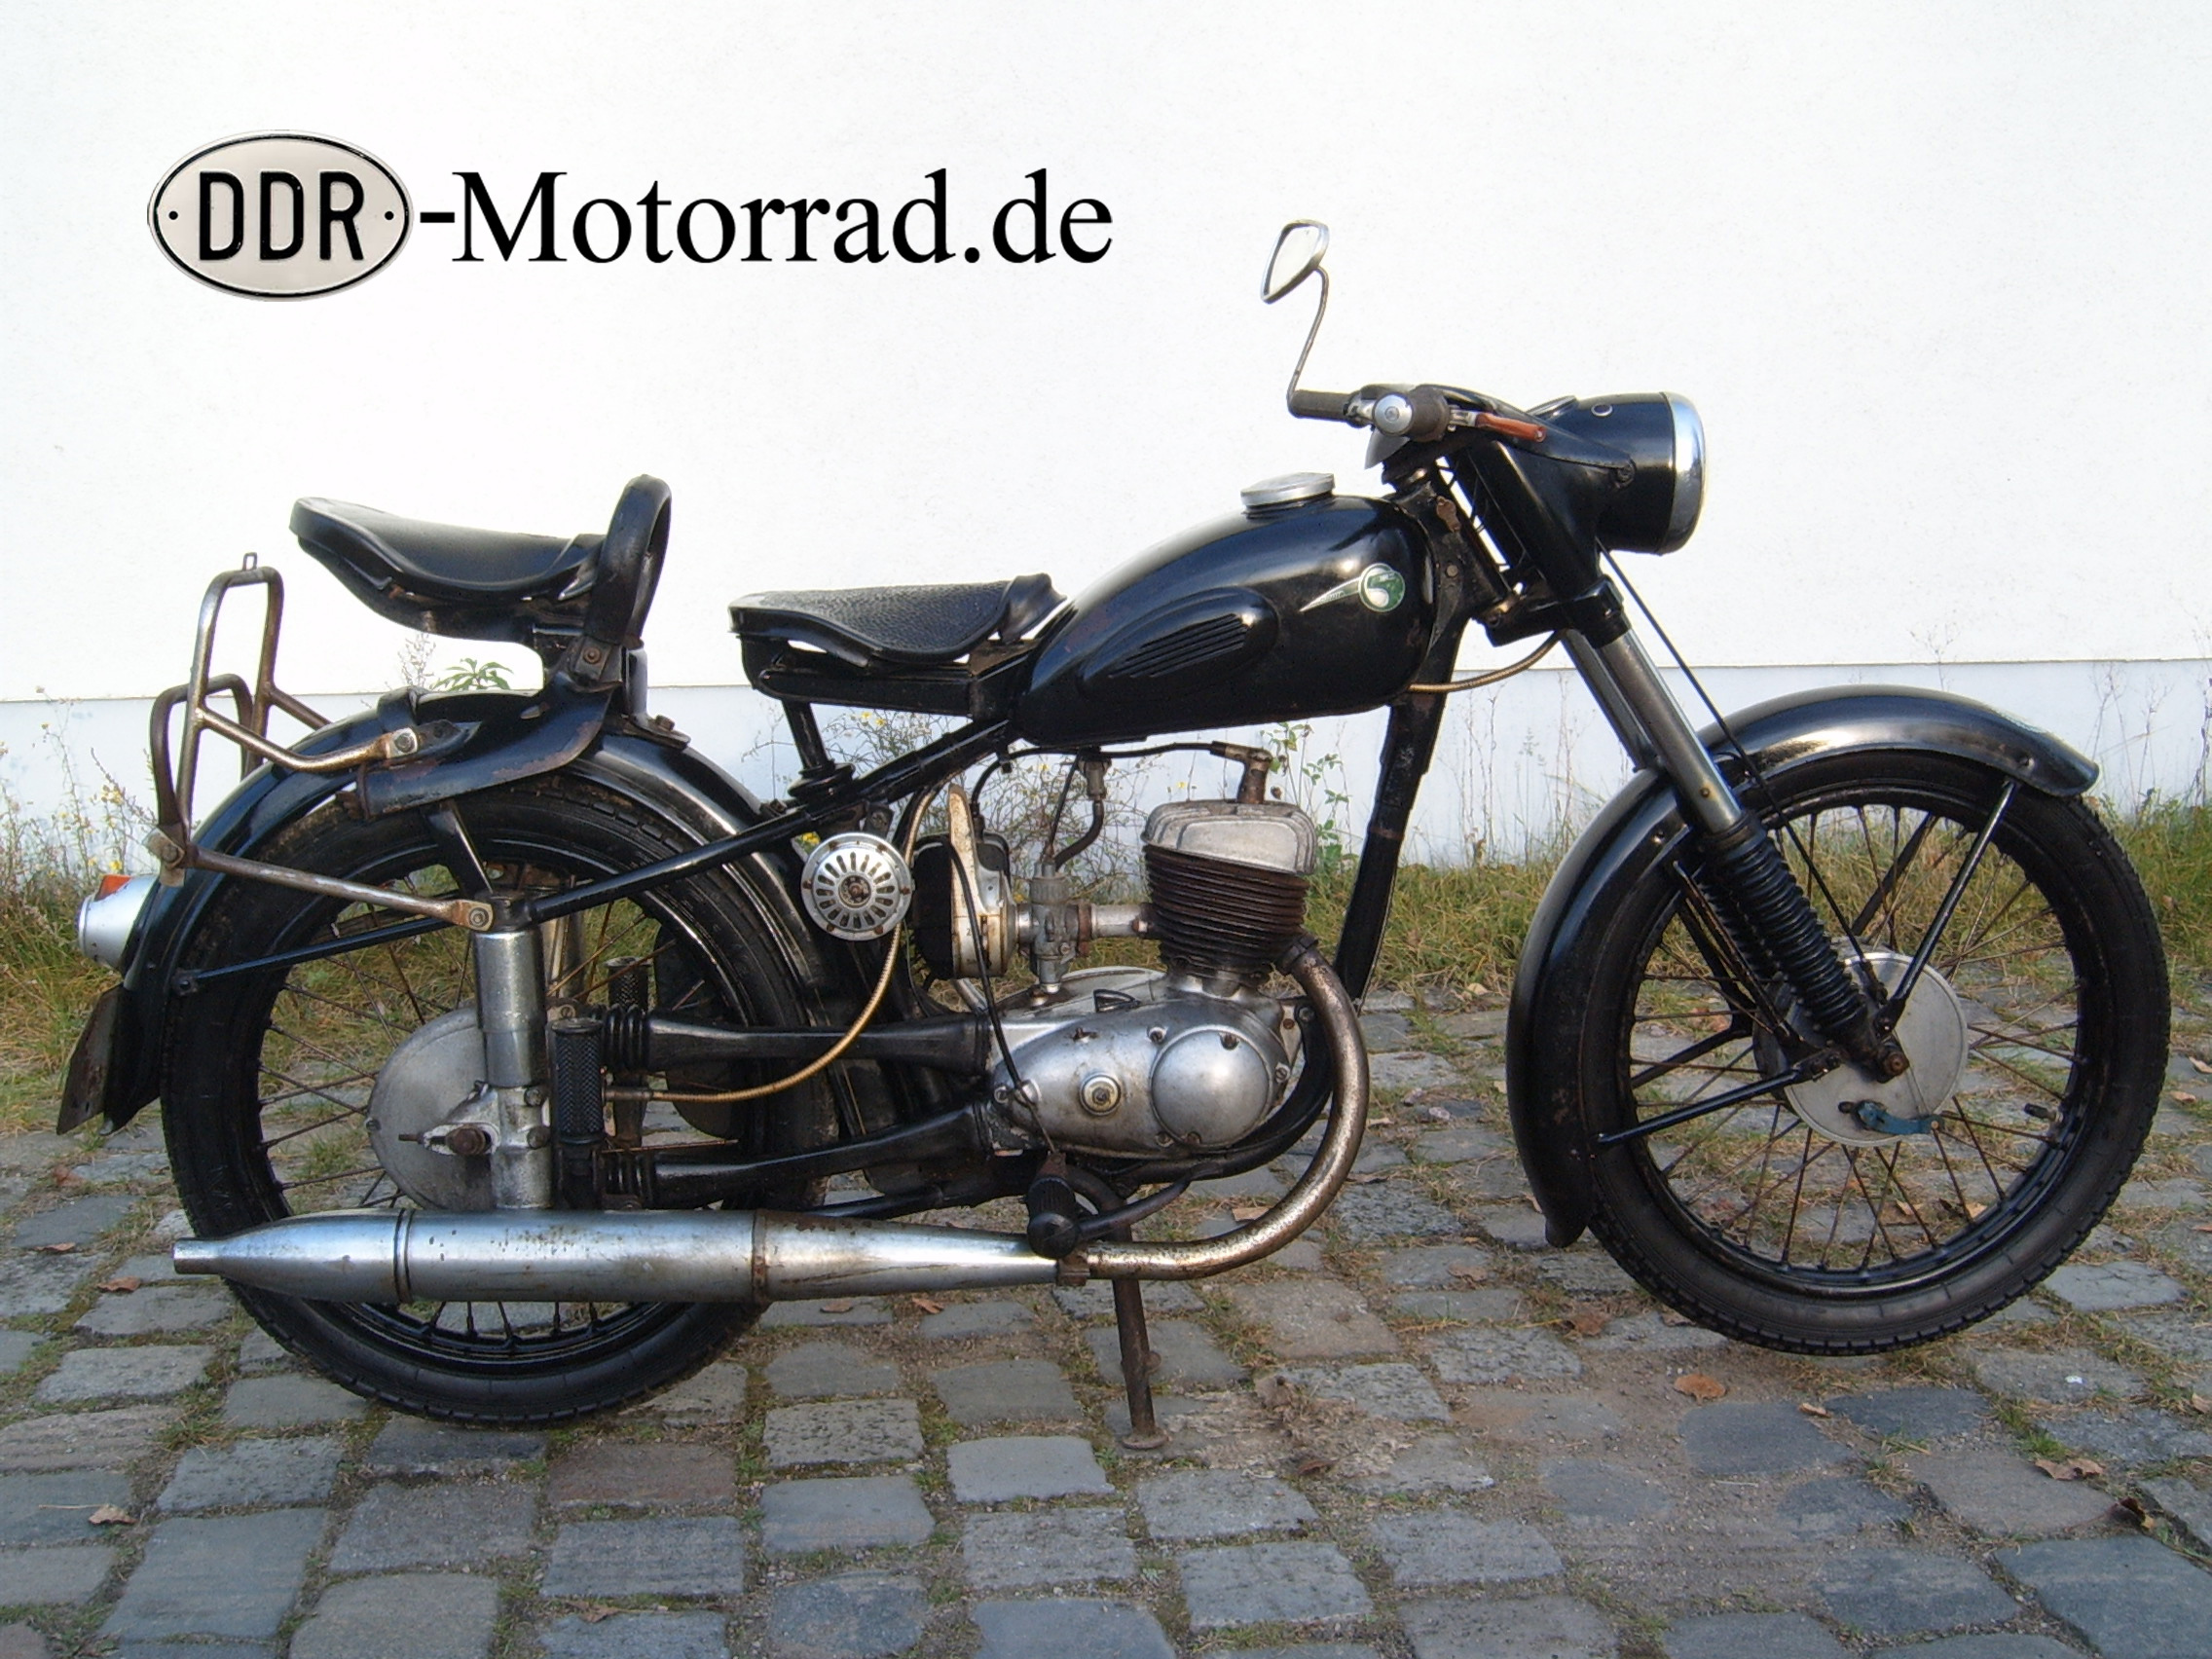 ddr motorrad bildergalerie ddr ersatzteileshop. Black Bedroom Furniture Sets. Home Design Ideas